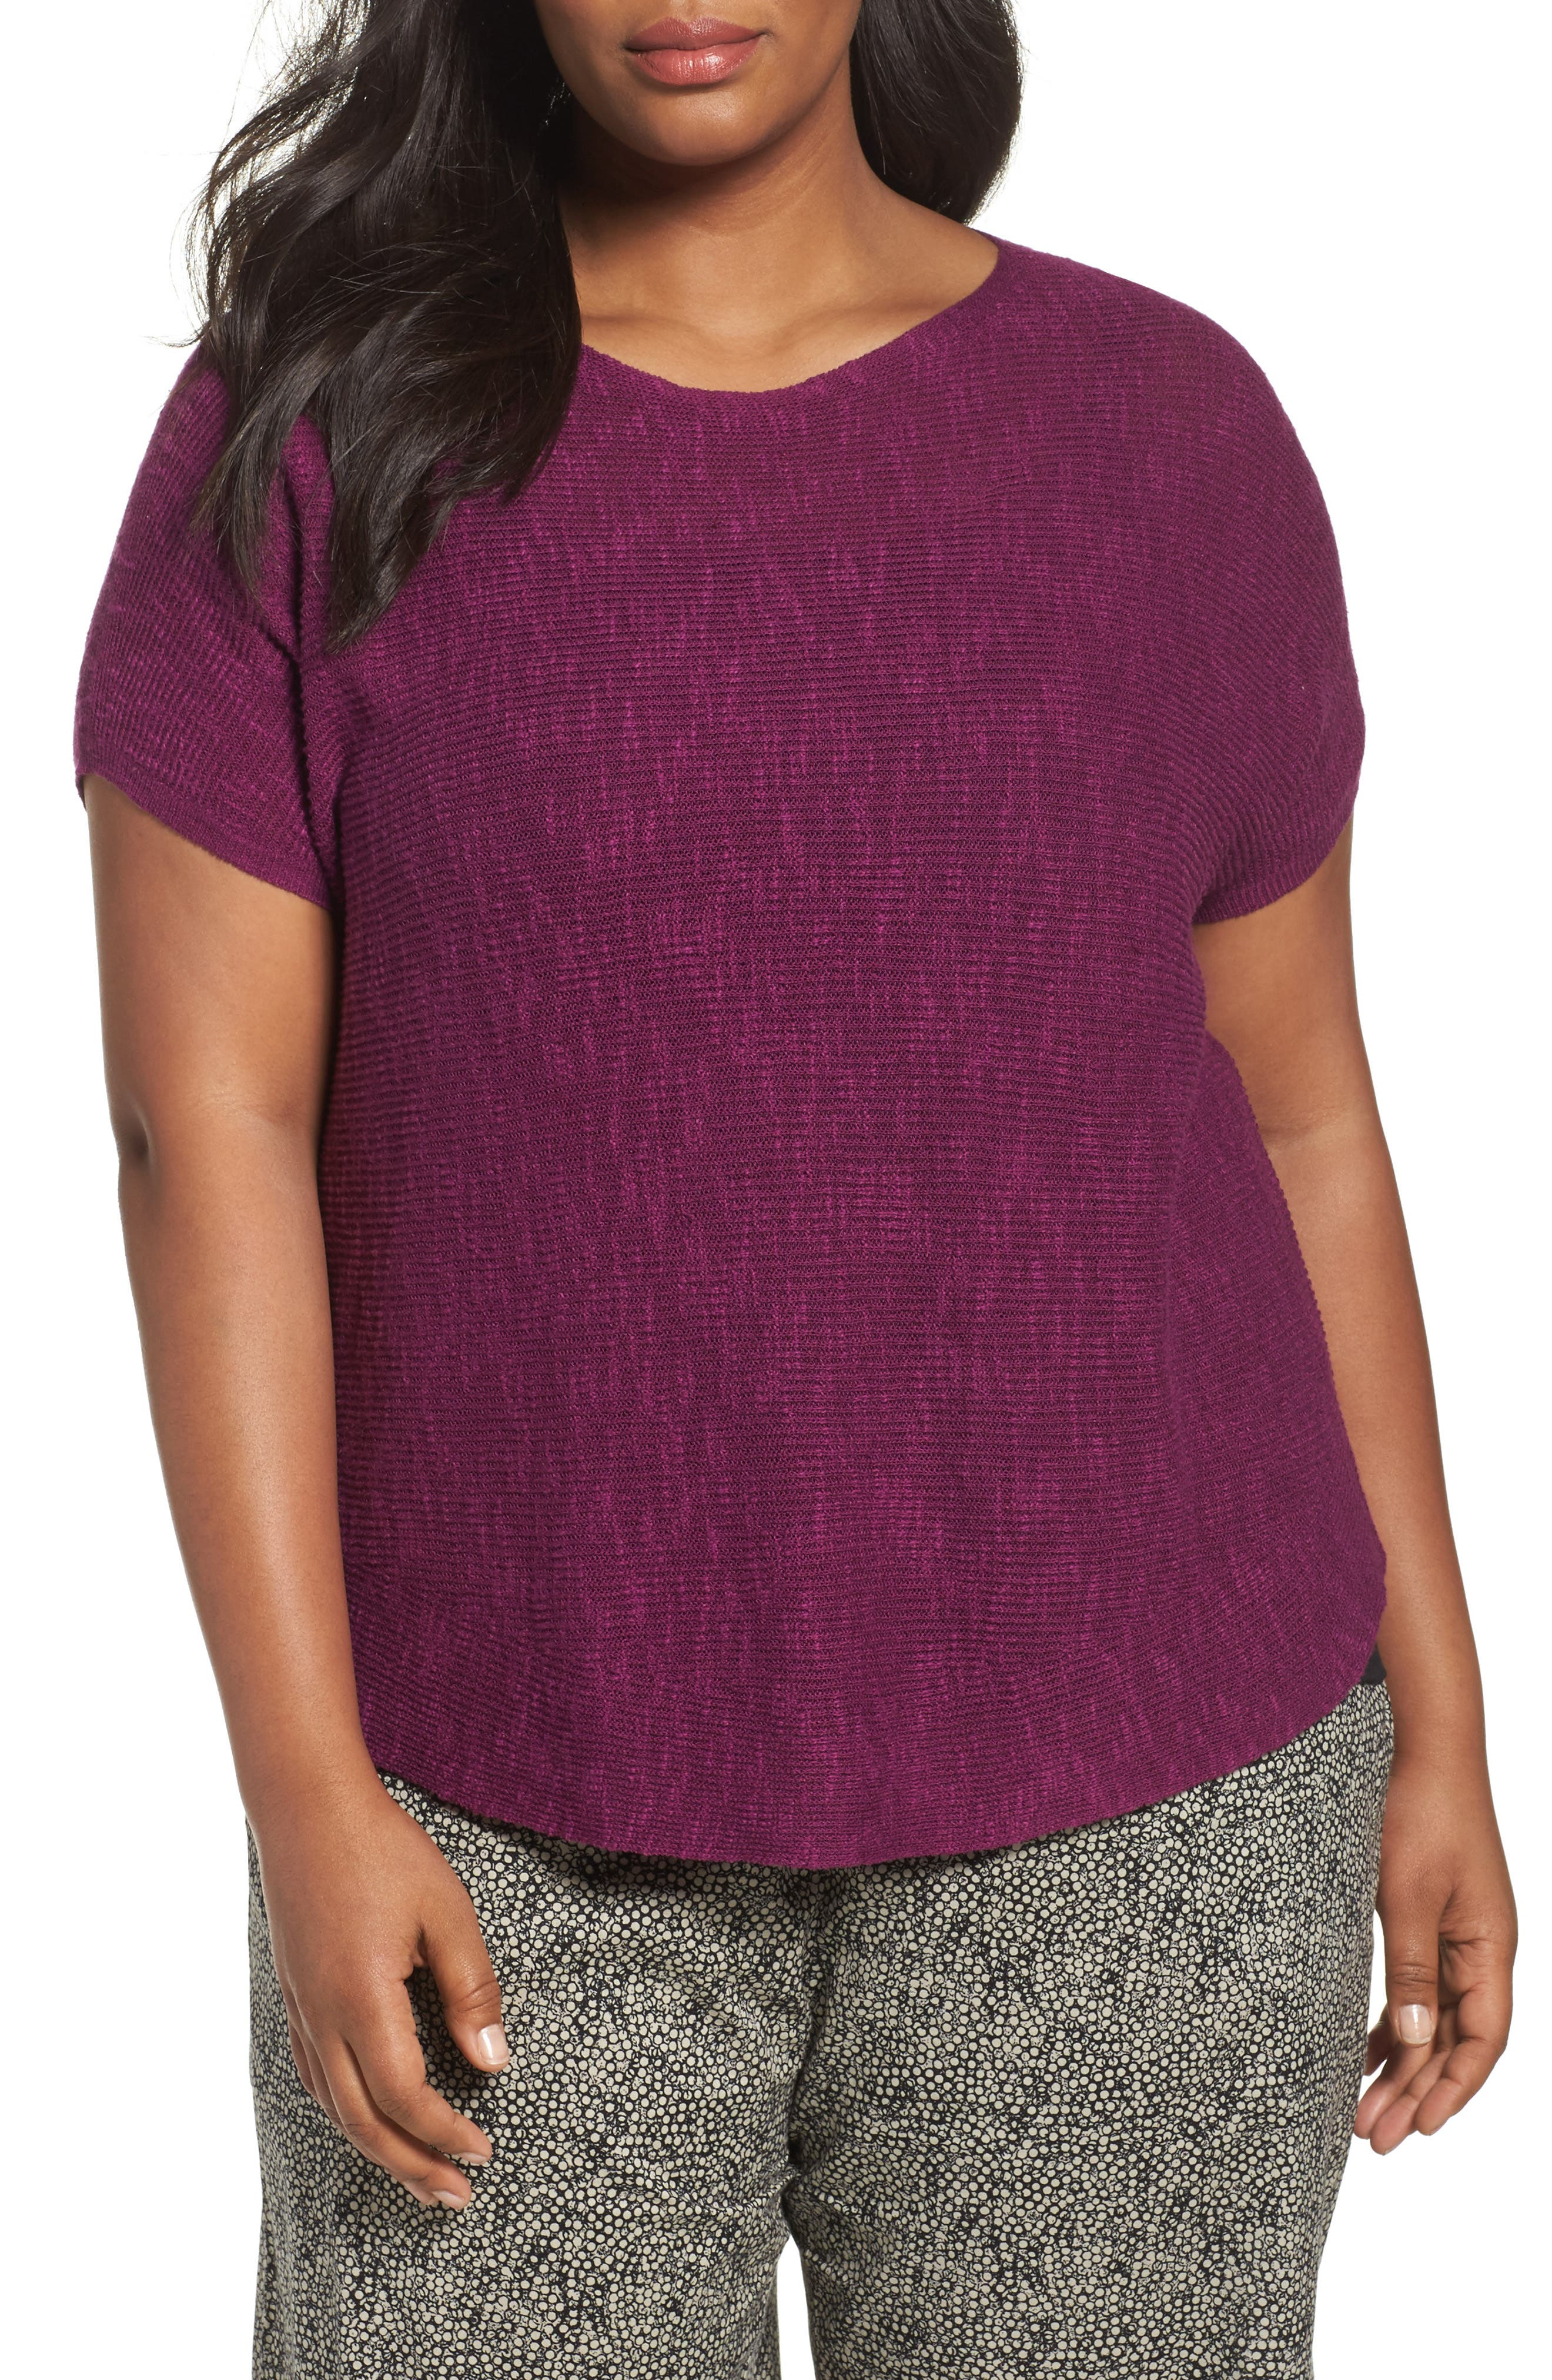 Alternate Image 1 Selected - Eileen Fisher Organic Linen & Cotton Rib Sweater (Plus Size)